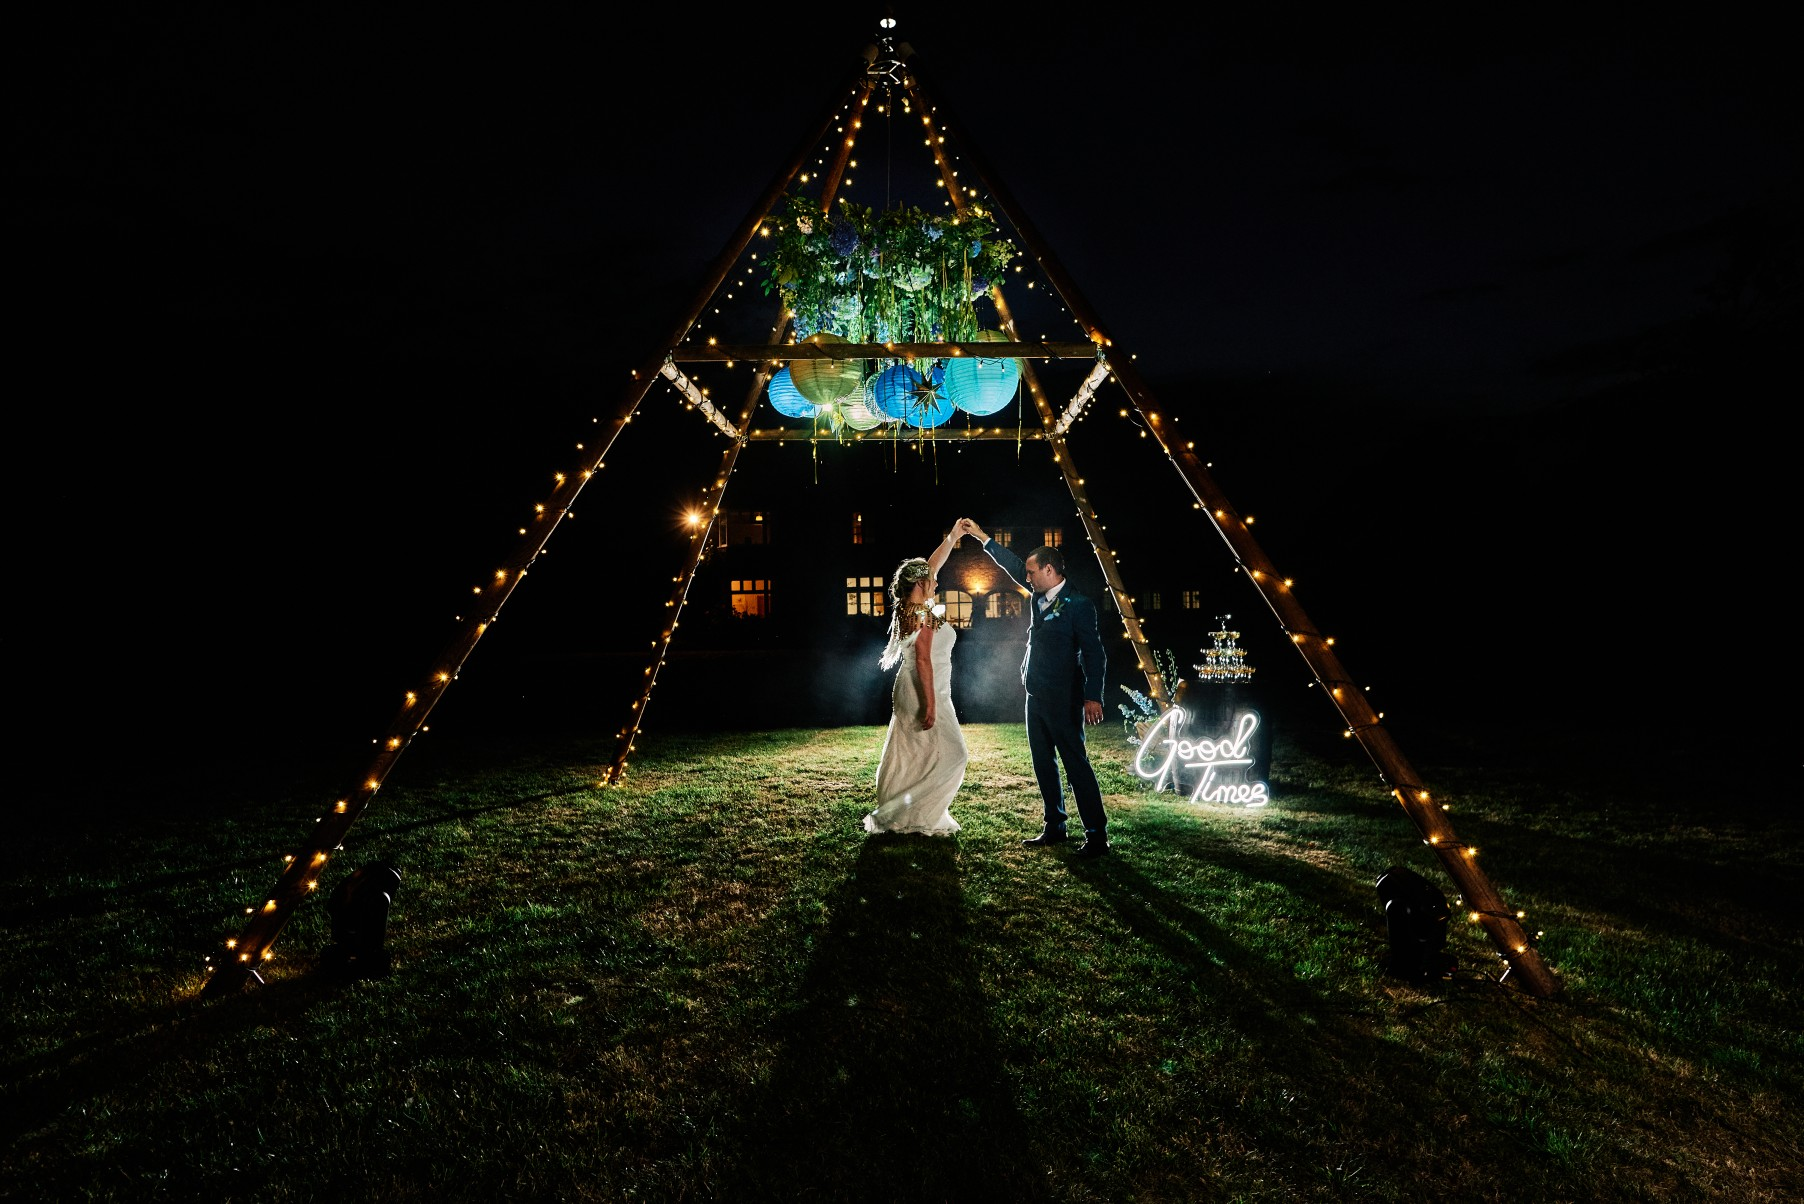 nhs wedding - paramedic wedding - blue and gold wedding - outdoor wedding - micro wedding - surprise wedding - bride and groom dancing in naked tipi